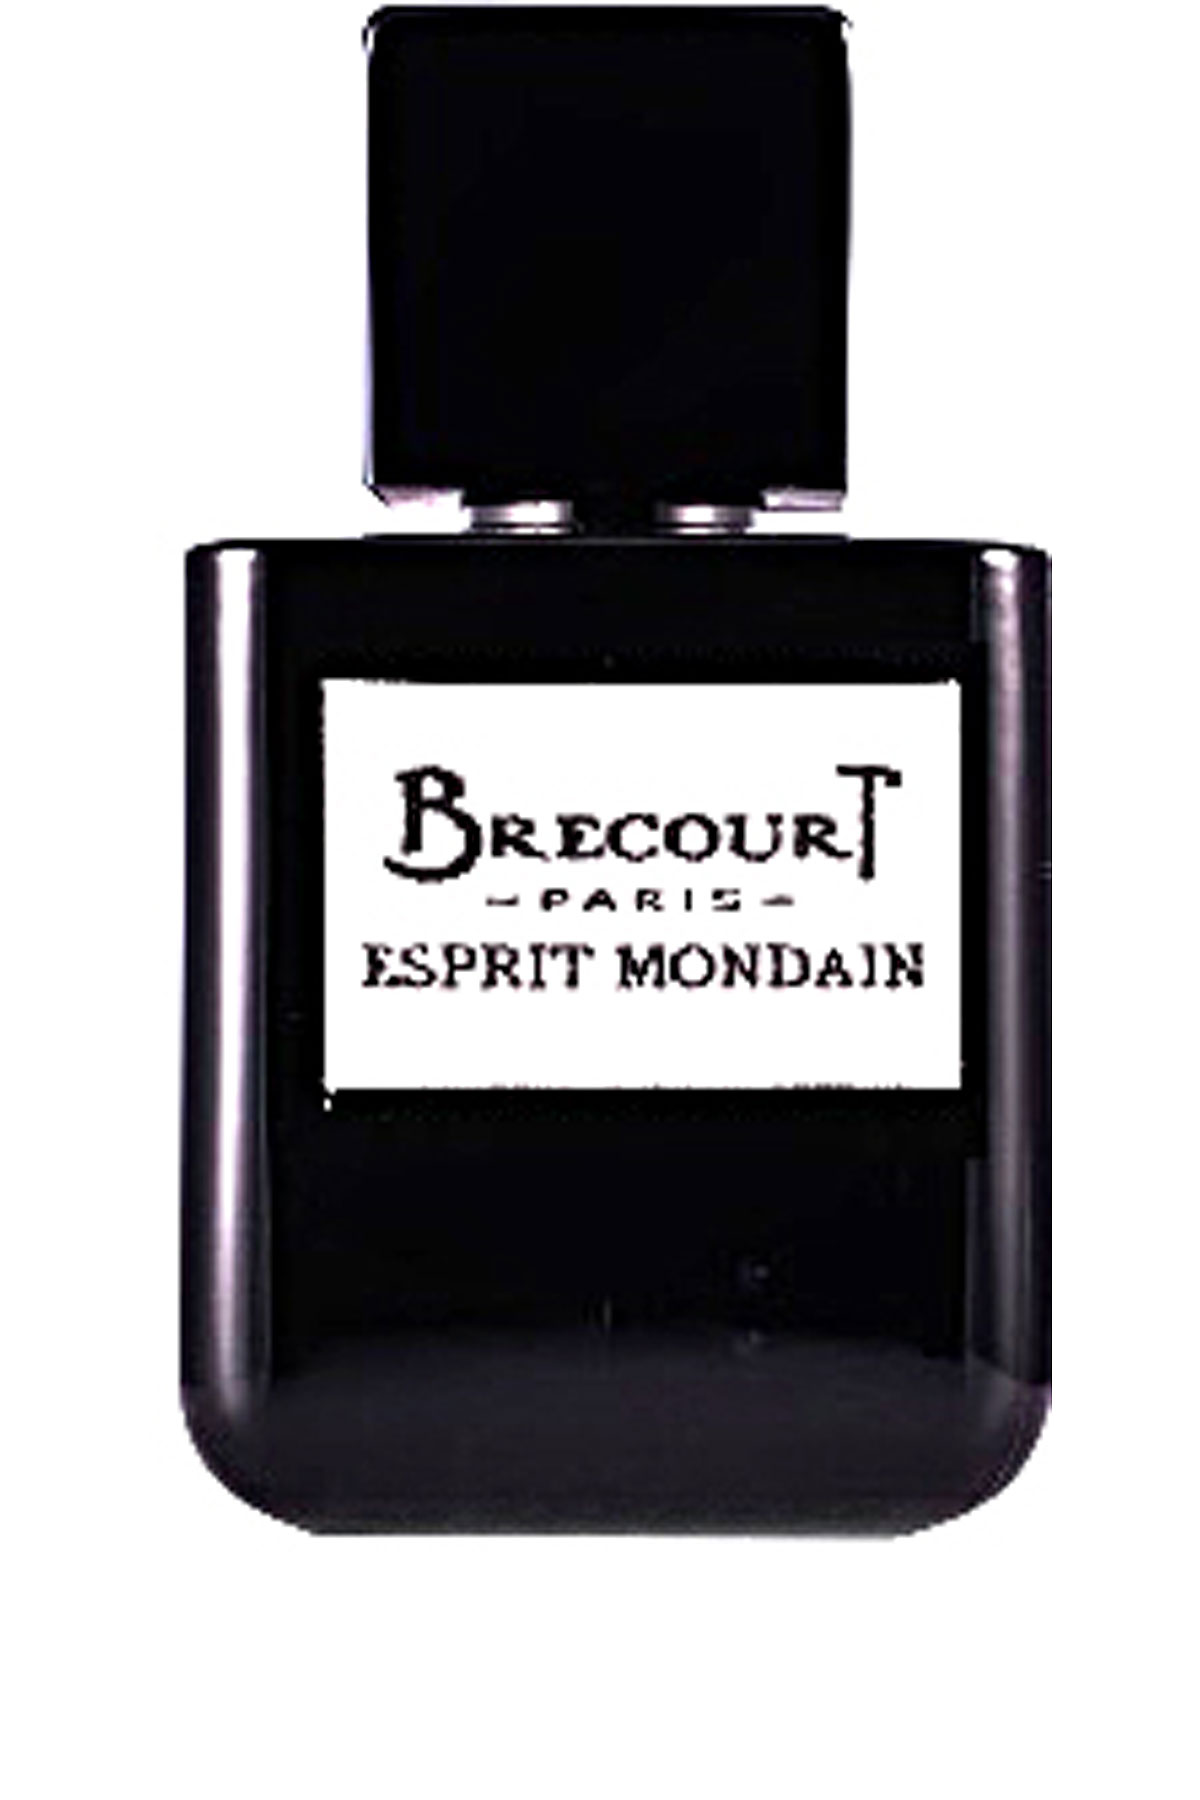 Brecourt Fragrances for Men, Esprit Mondaine Eau De Parfum 50 Ml, 2019, 50 ml